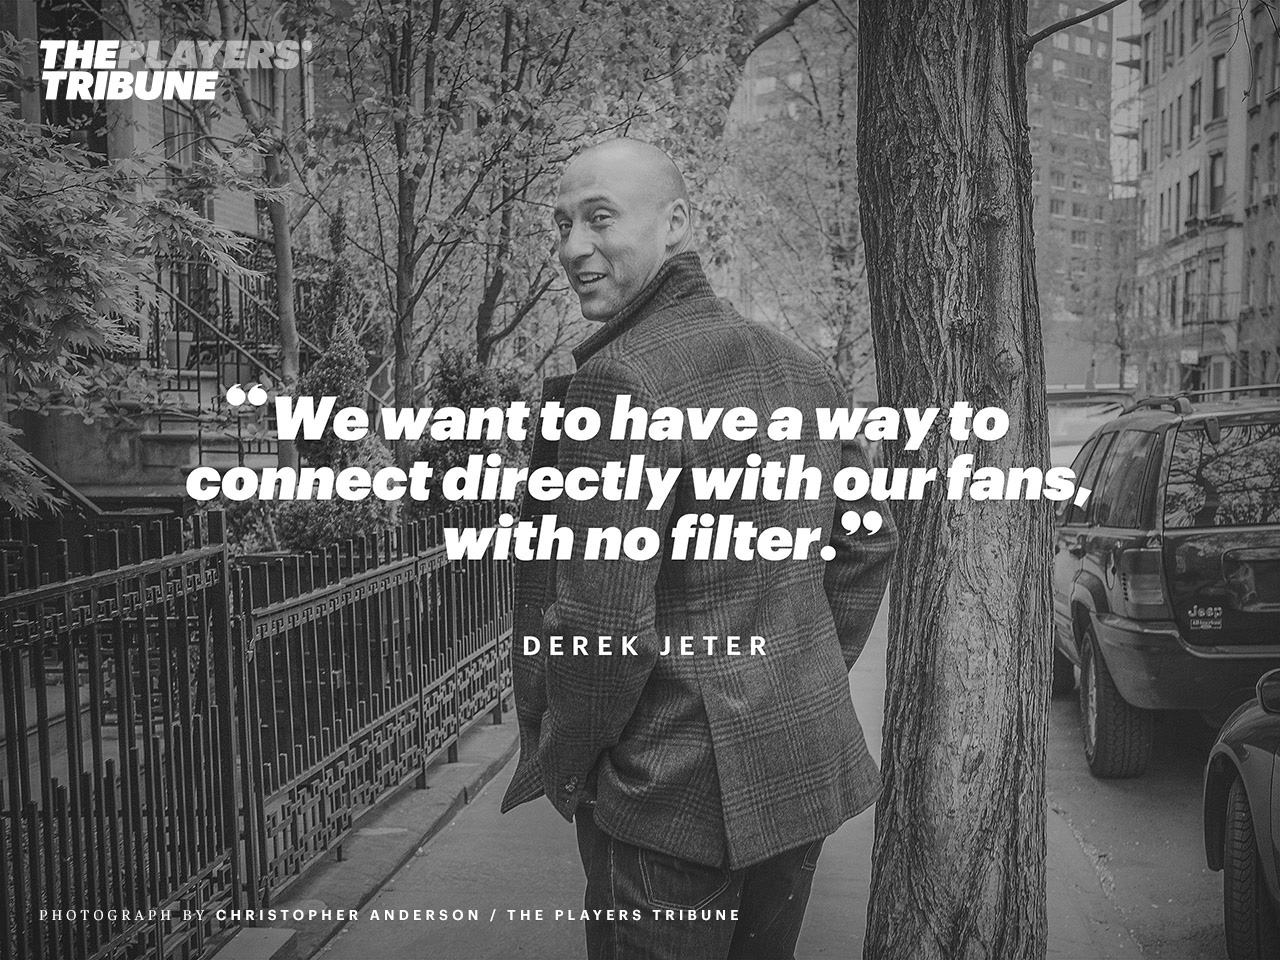 Derek-Jeter-The-Players-Tribune.jpg